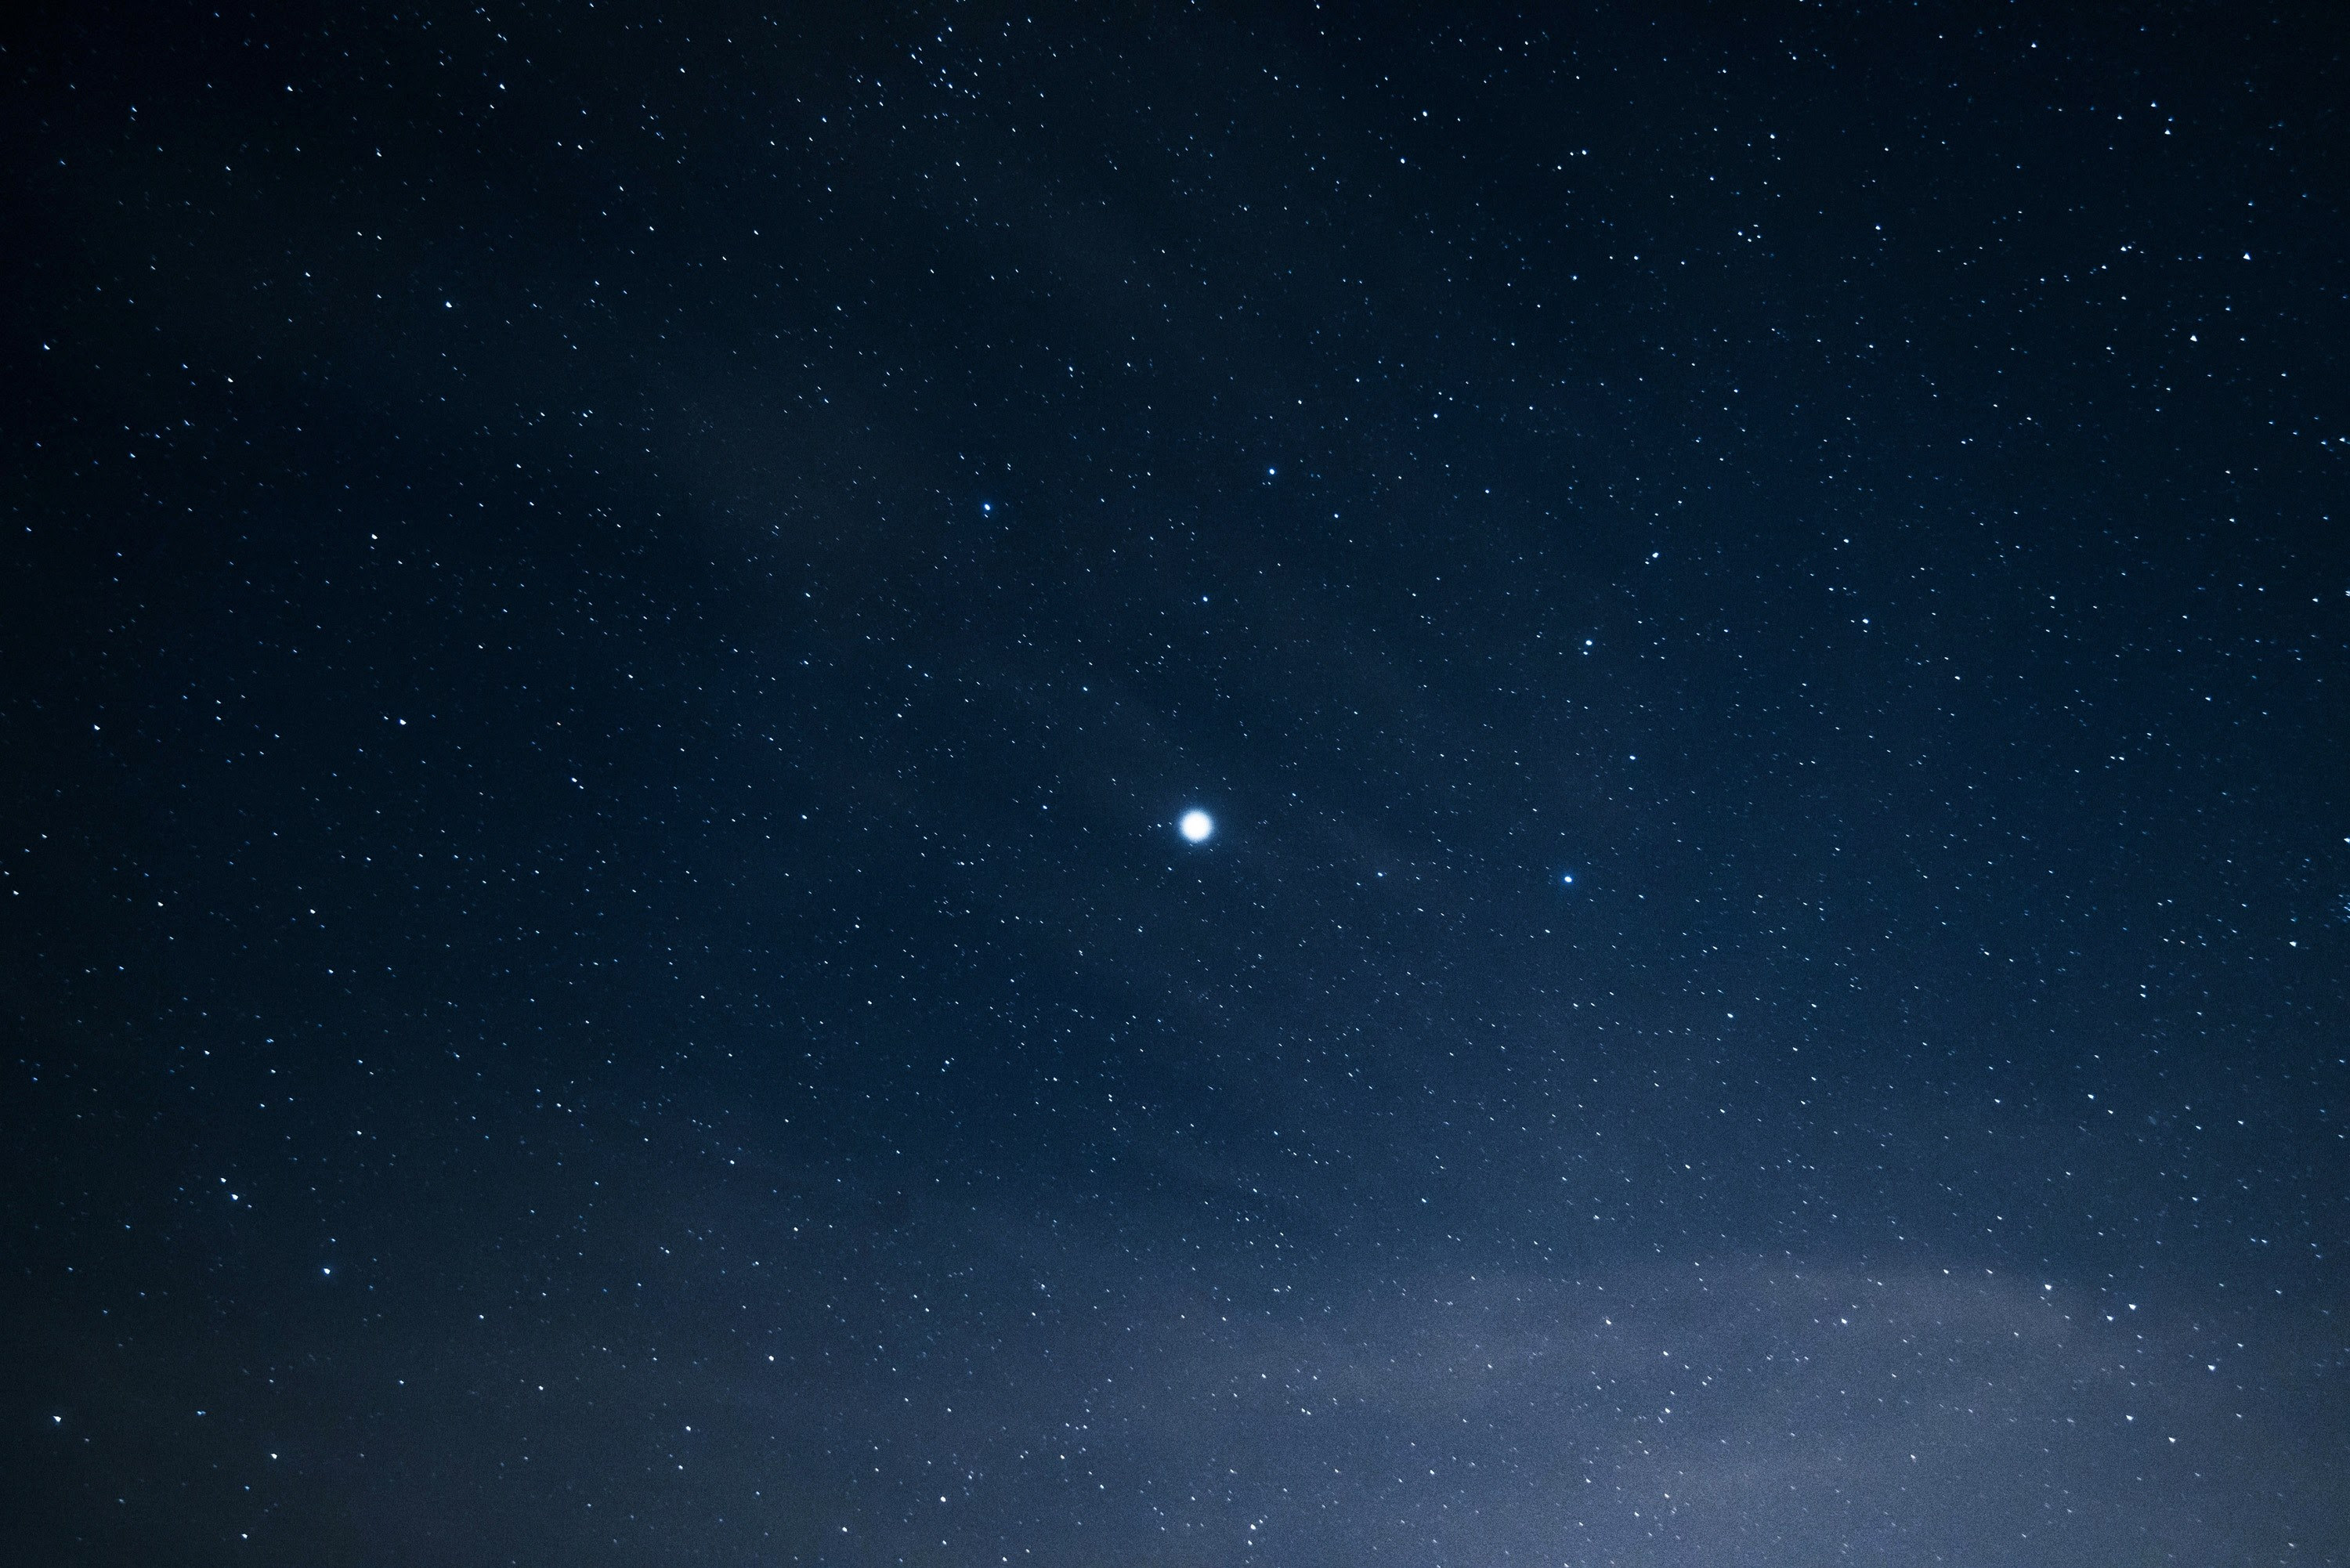 In The Night Sky Full Of Stars Stands A Bright Lone Starbright